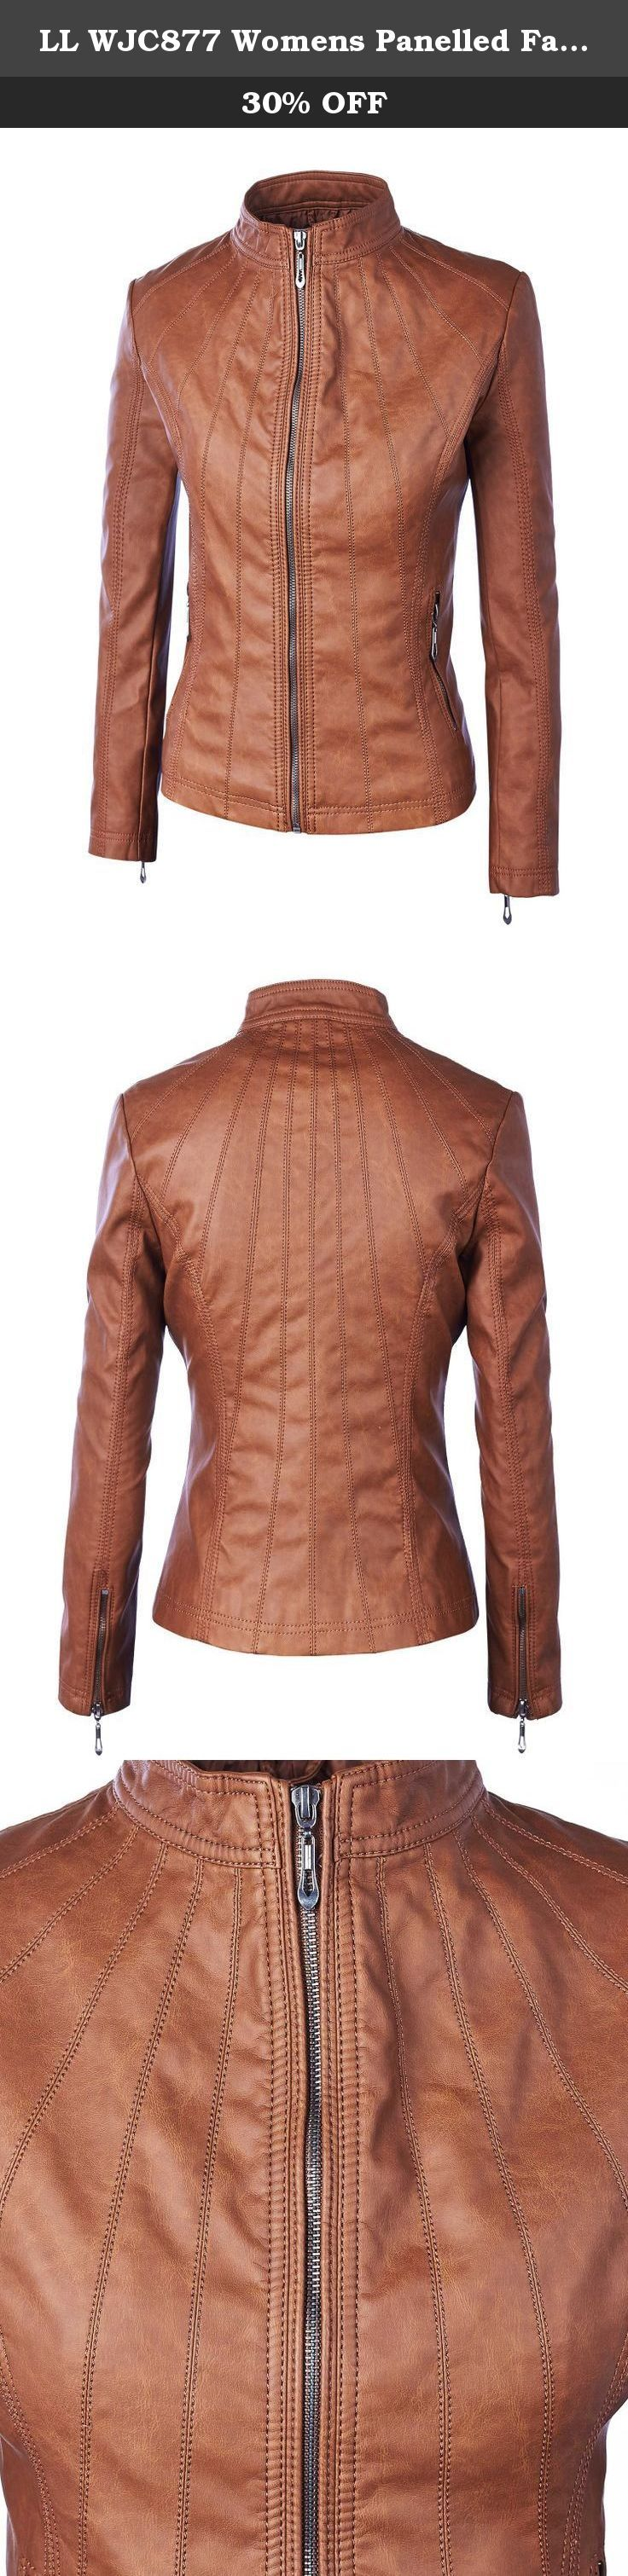 LL WJC877 Womens Panelled Faux Leather Moto Jacket L CAMEL. Womens Faux Leather Zip Up Moto Biker Jacket with Stitching Detail.